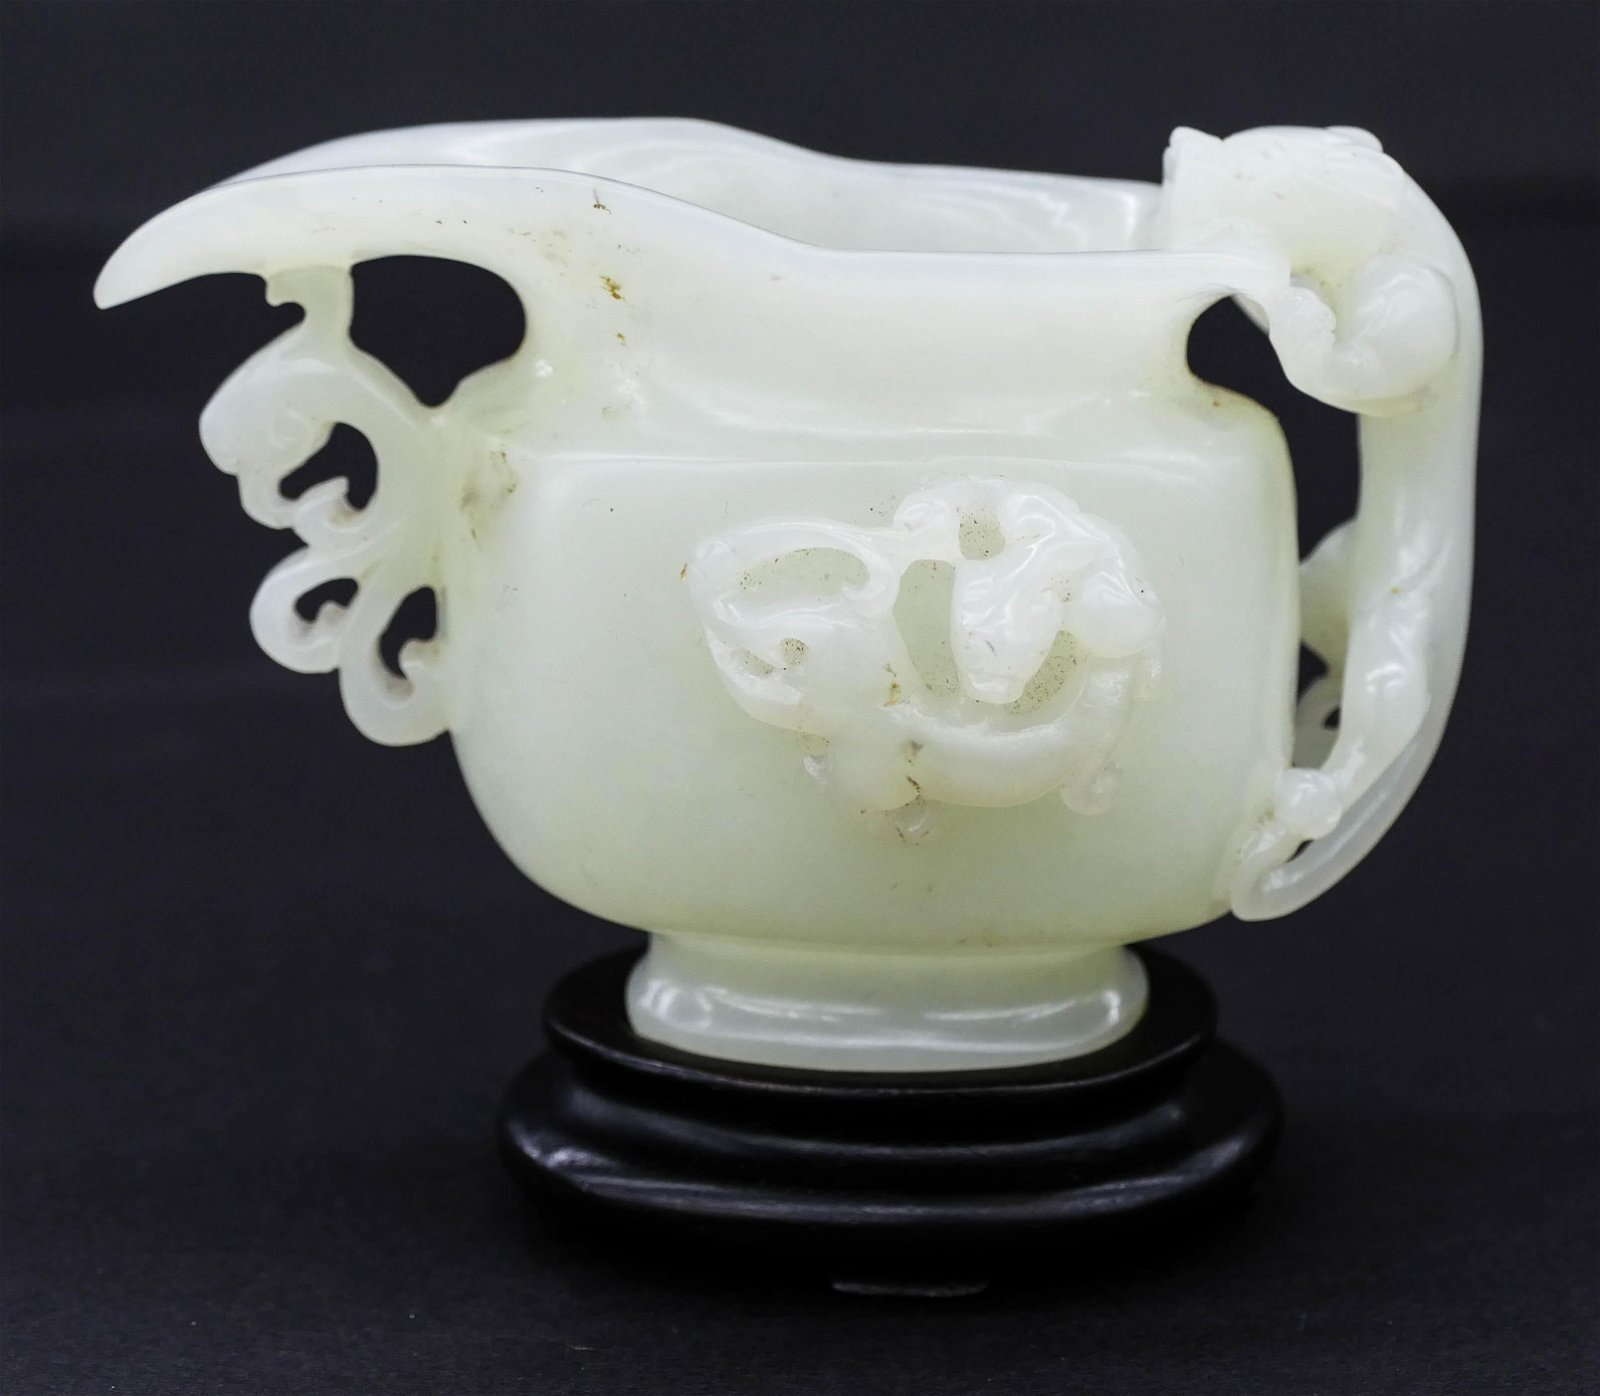 Chinese Jade Libation Cup on Stand 3''x3.75''. A white